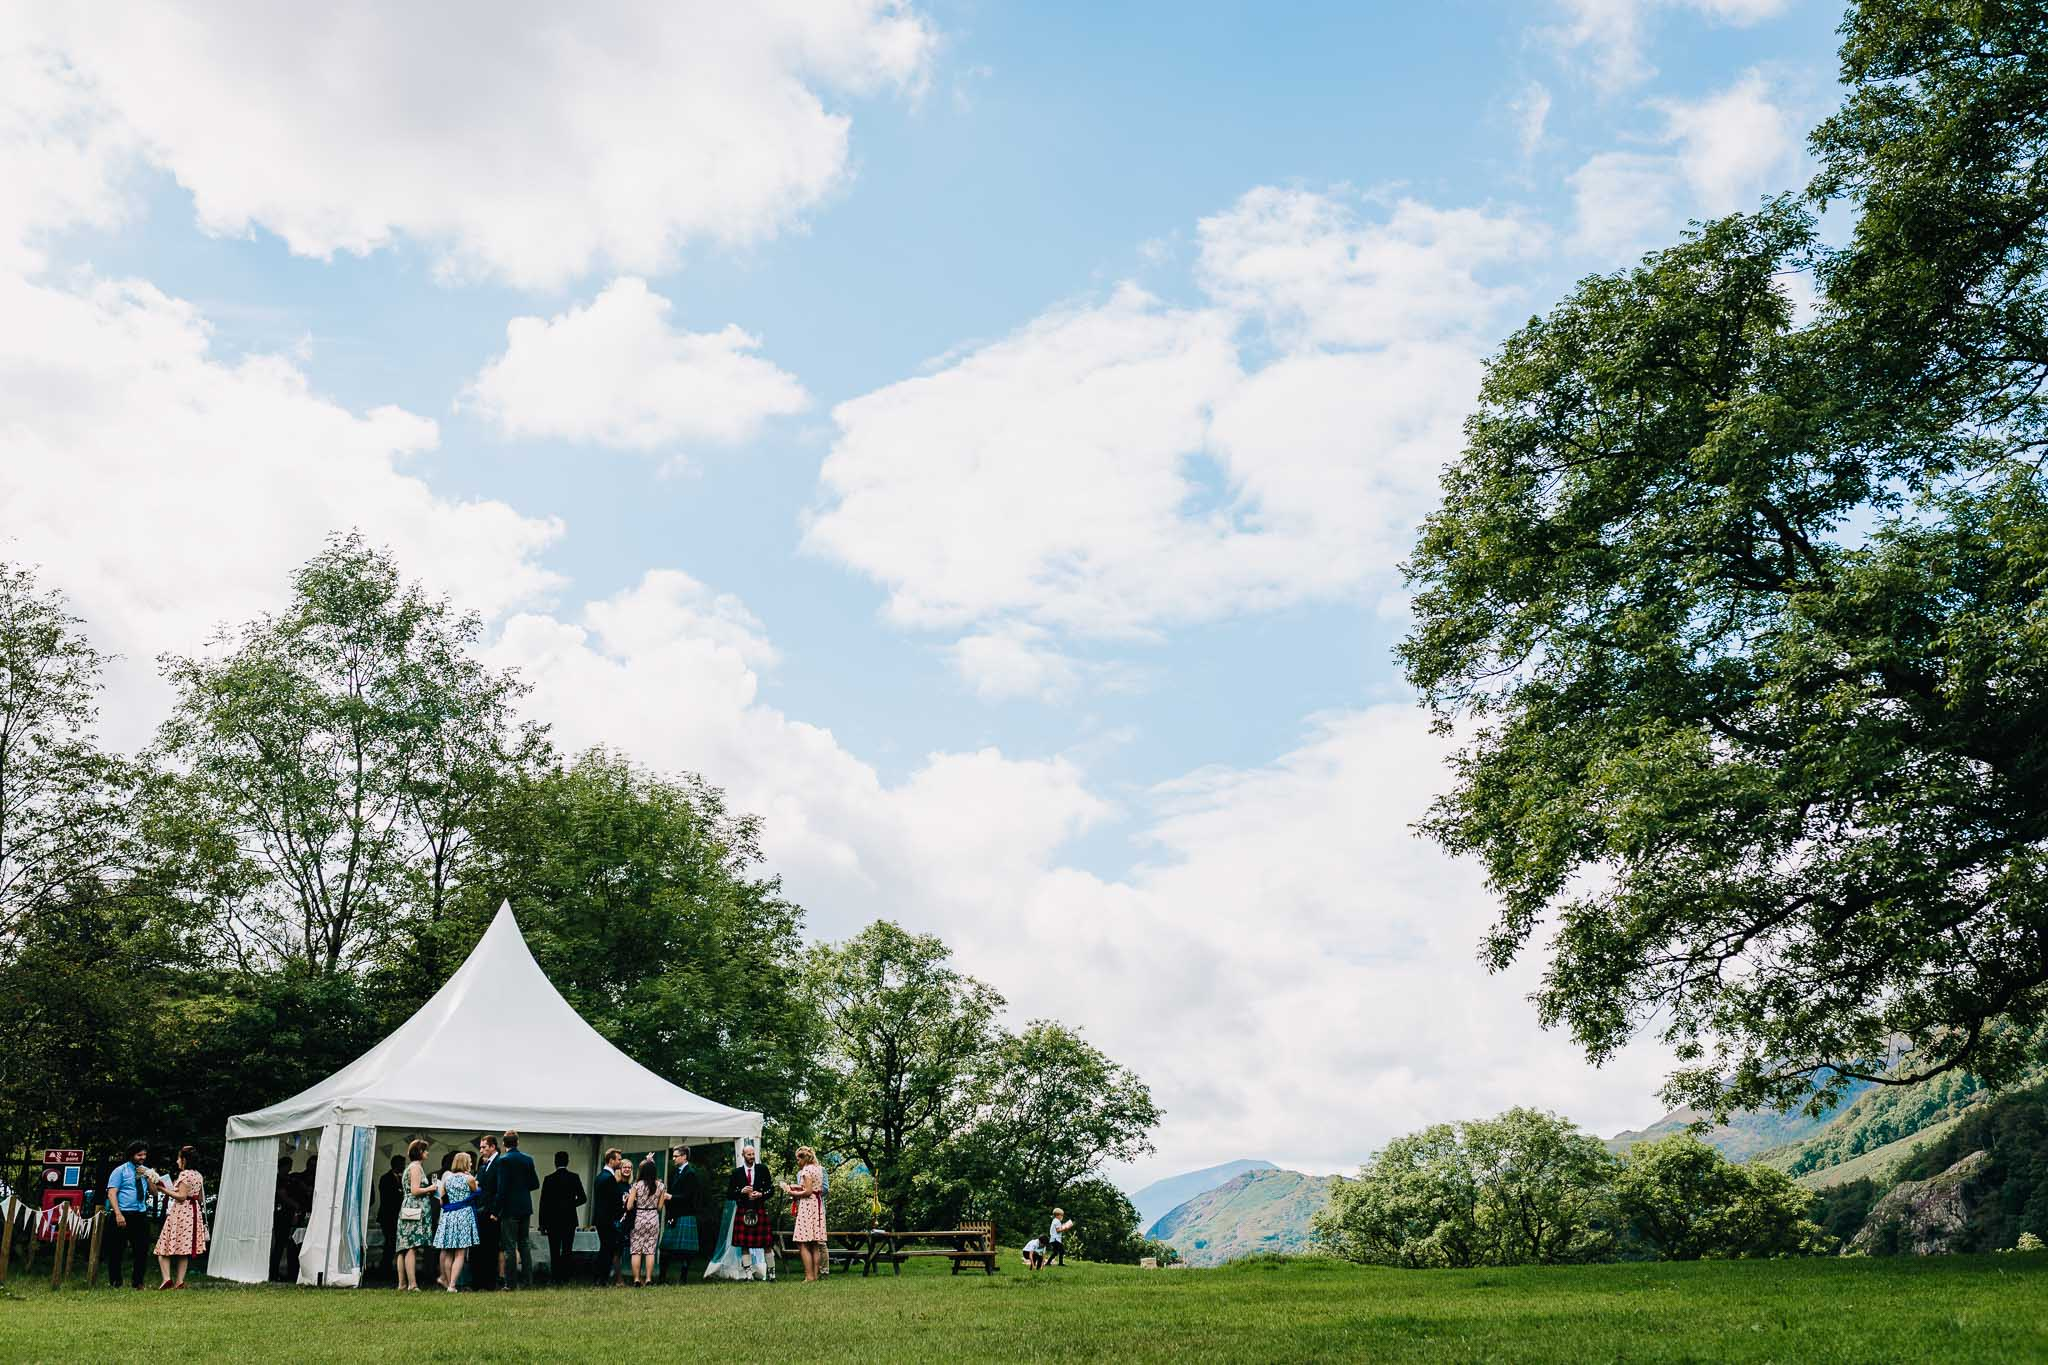 WEDDING PARTY TENT AT OUTDOOR LLYN GWYNANT WEDDING